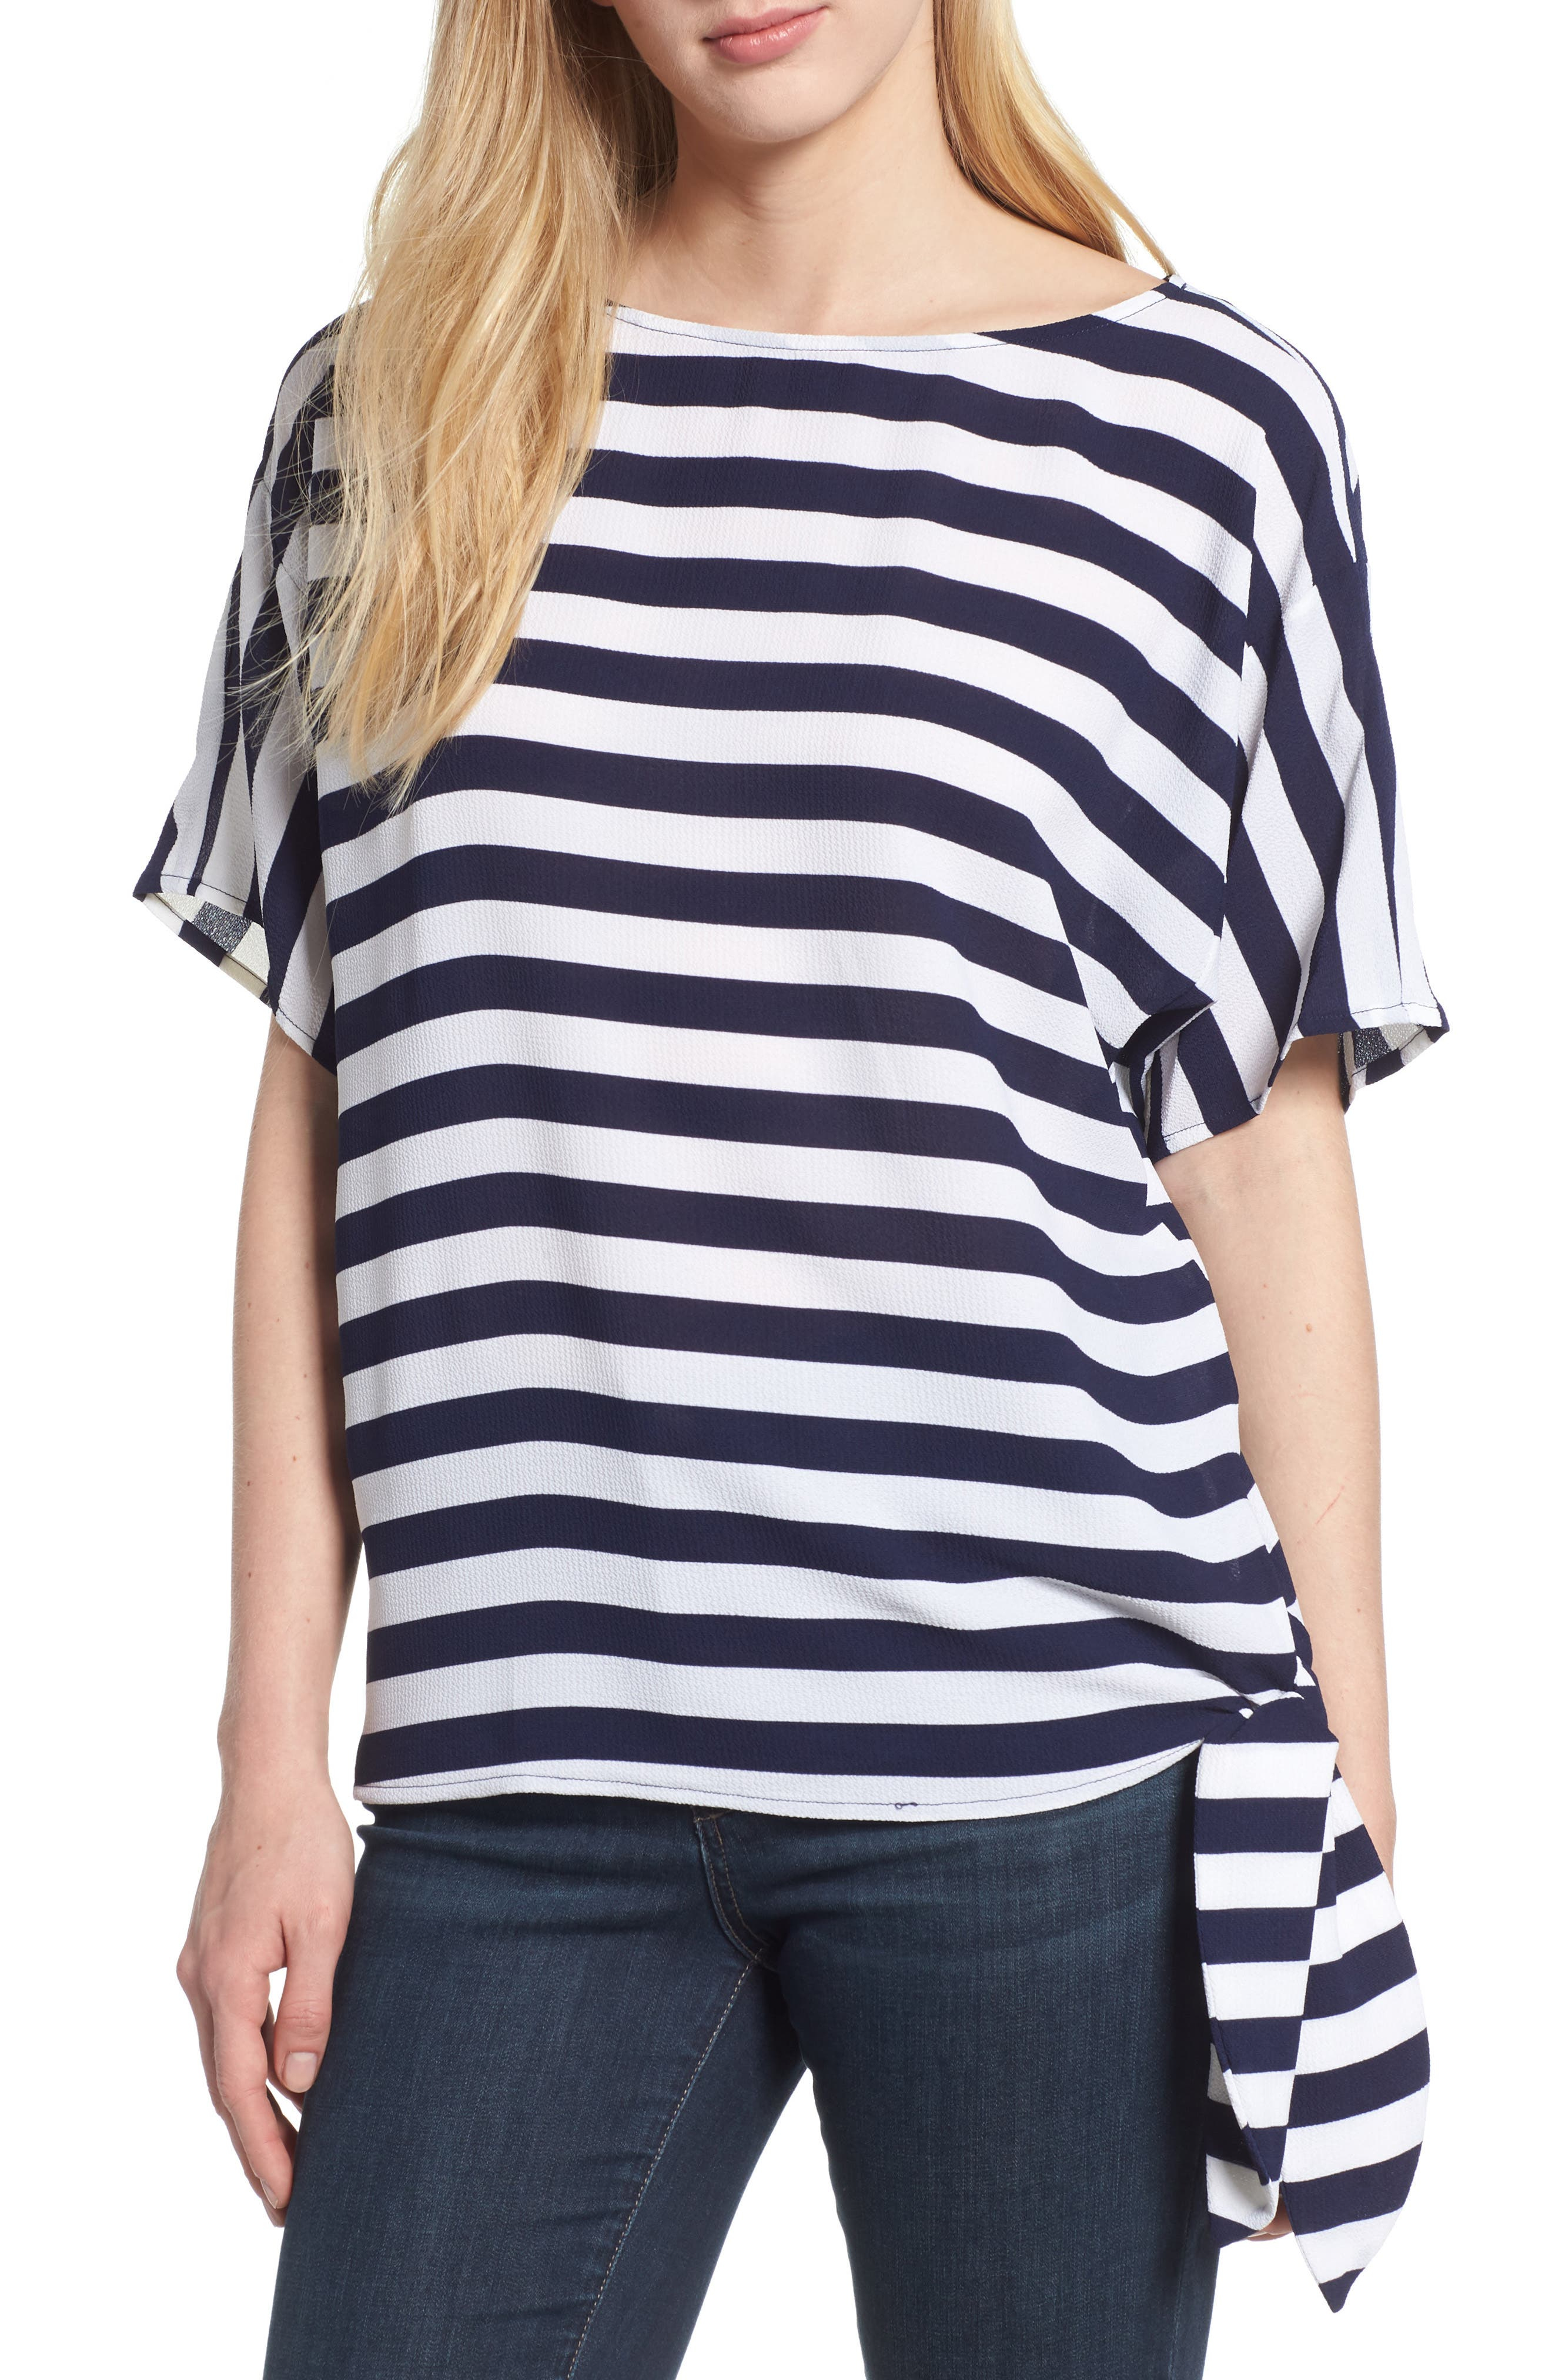 MICHAEL Michael Kors Side Tie Striped Top,                             Main thumbnail 1, color,                             True Navy